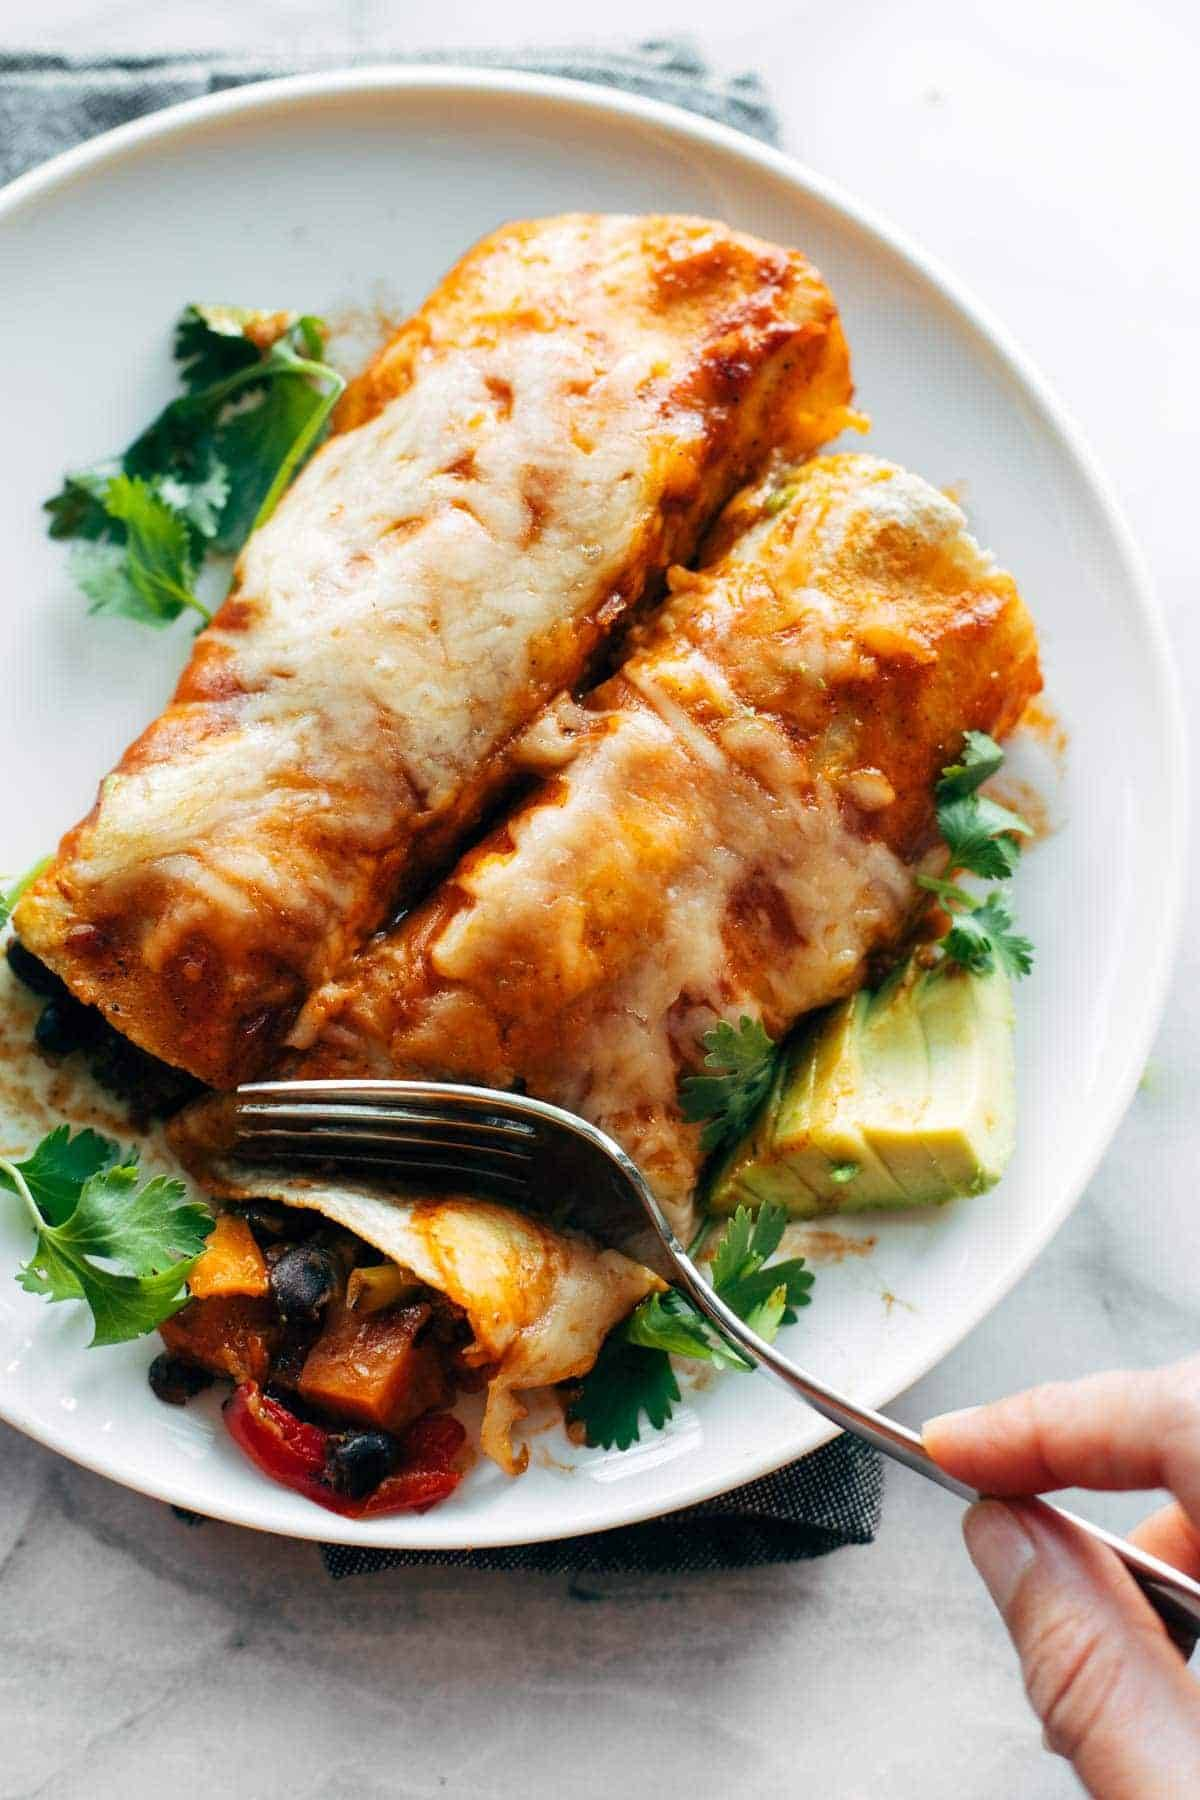 Taking bite out of veggie enchiladas.